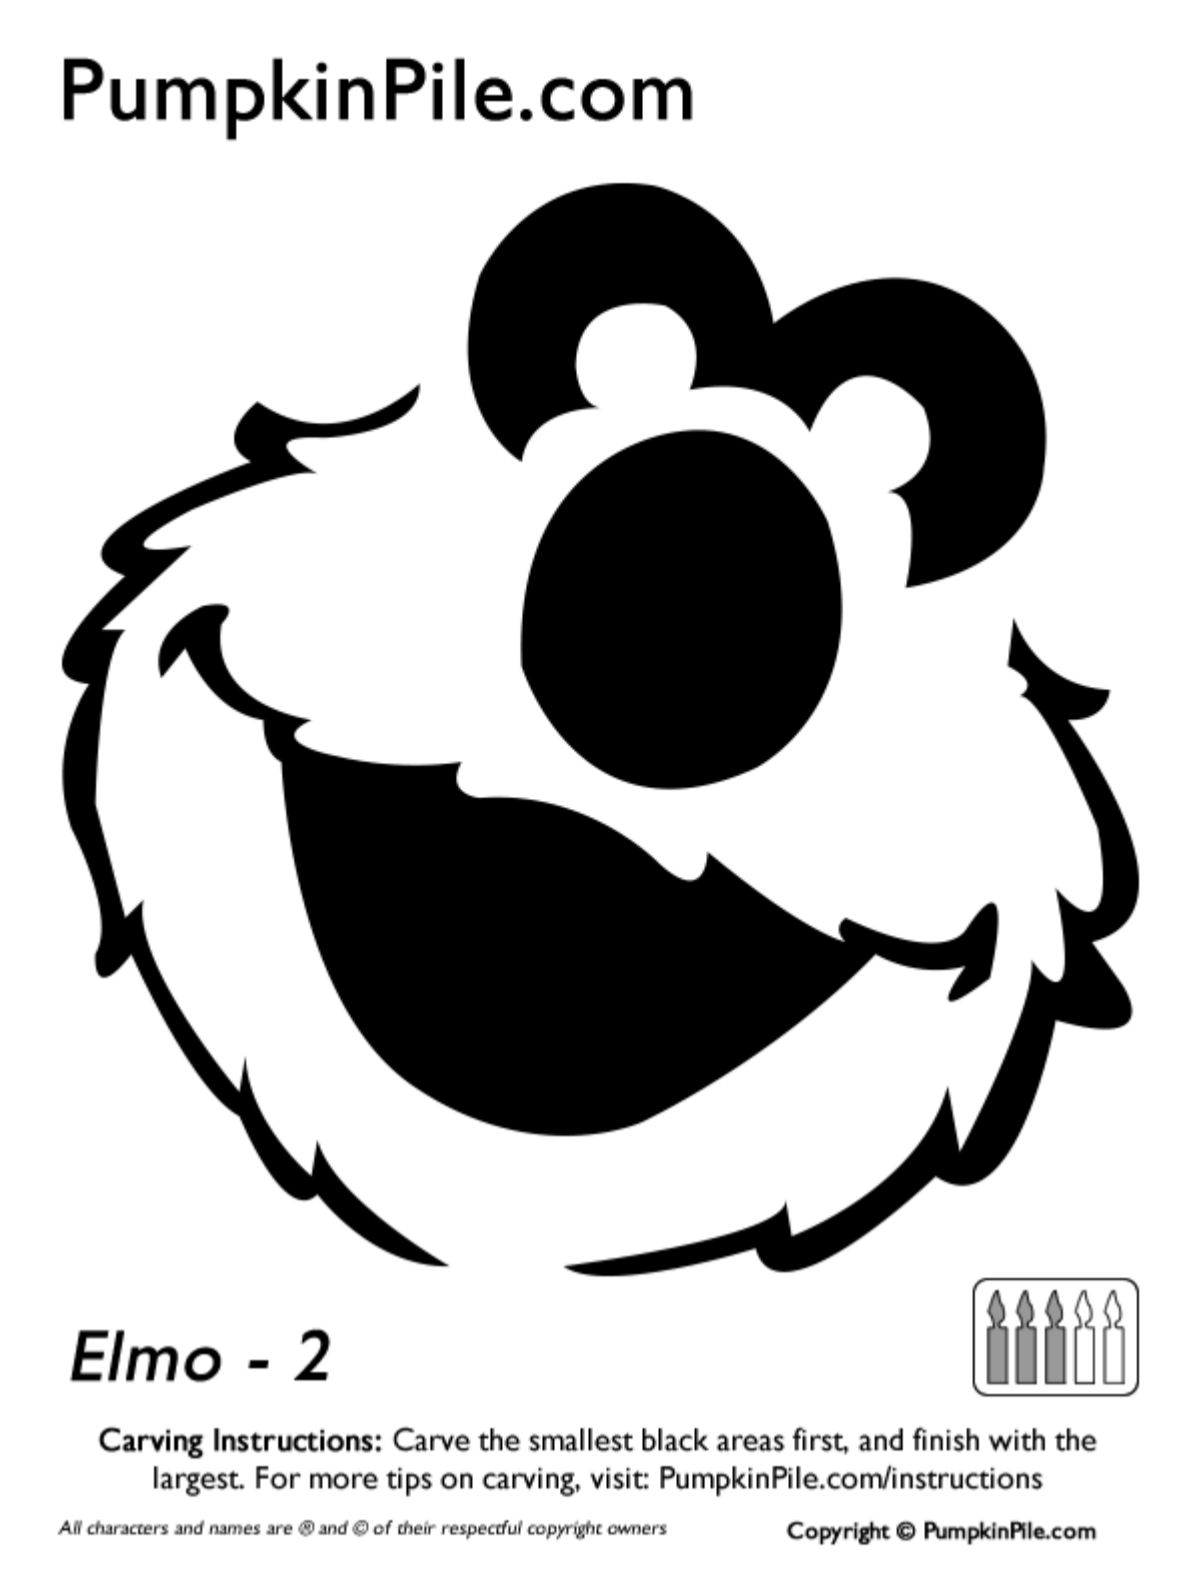 Easy elmo face pumpkin carving stencil template free for Elmo pumpkin template